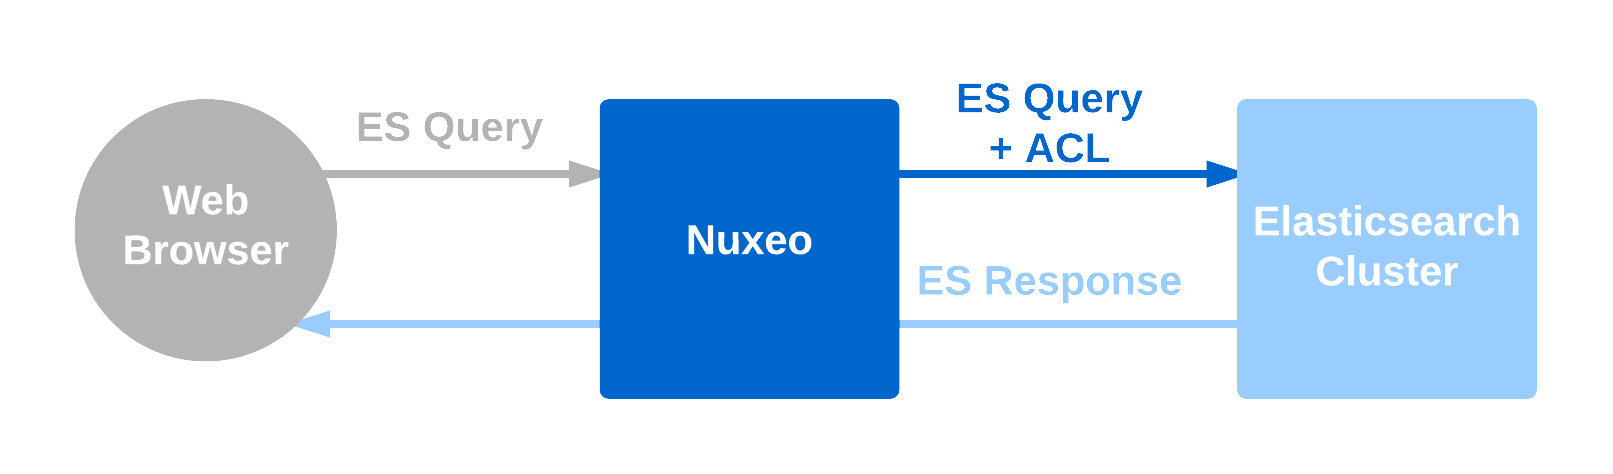 Optimizing Elasticsearch with the New API Passthrough | Nuxeo